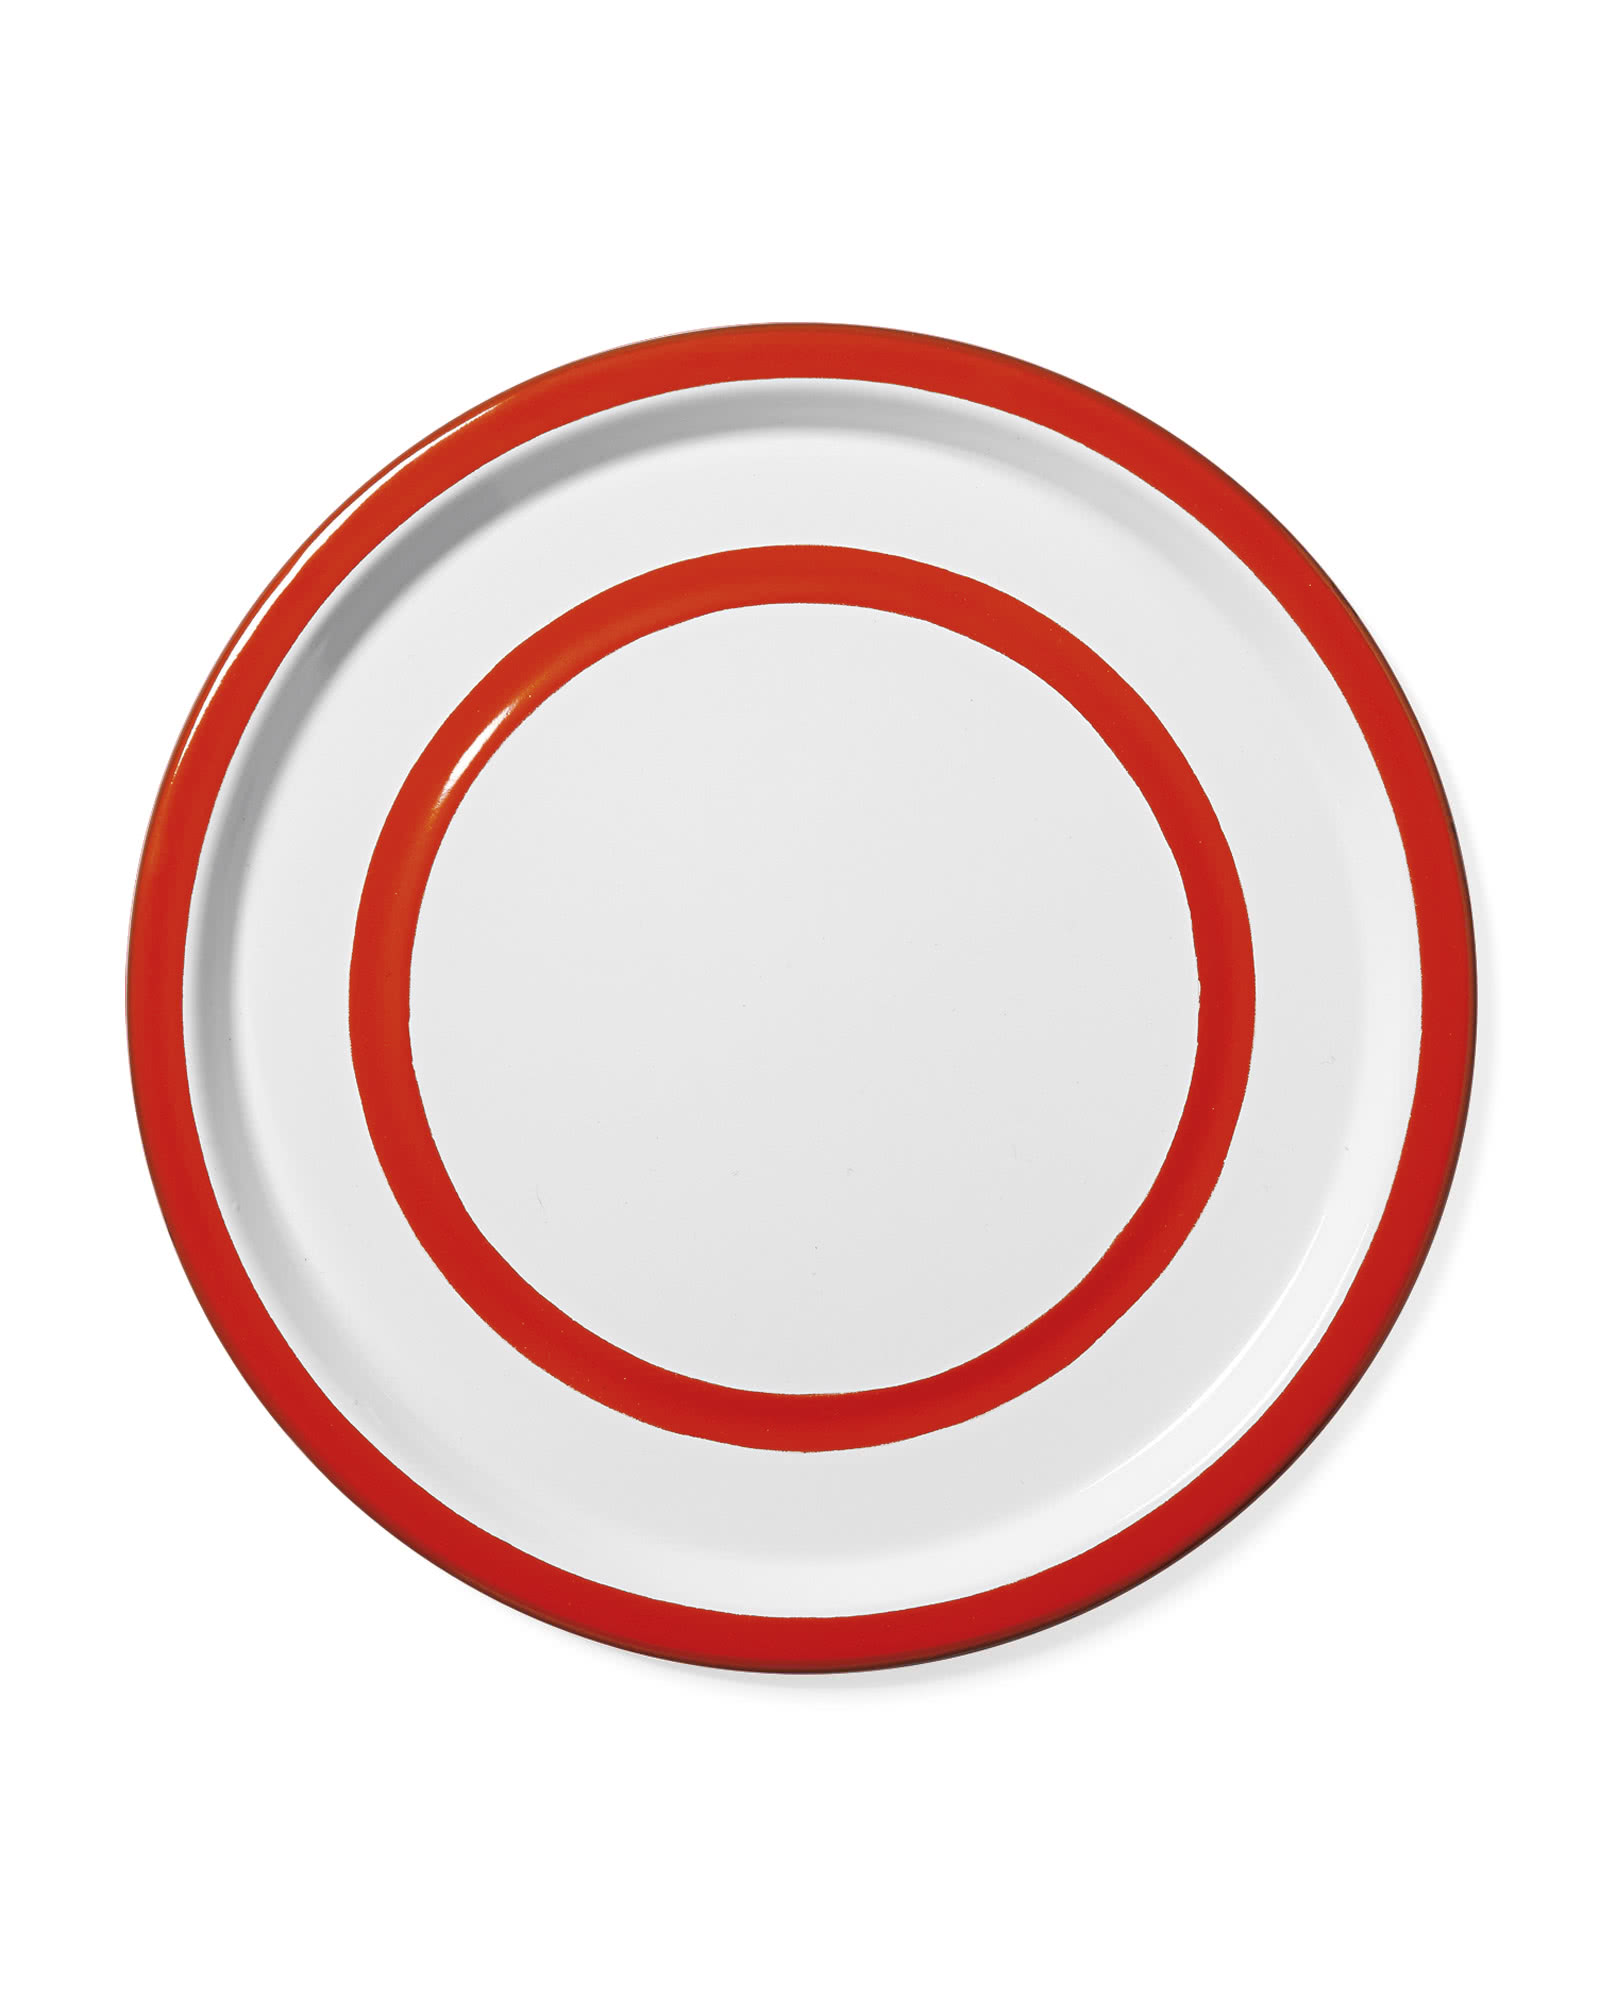 Milano Enamelware Dinner Plate - Serveware | Serena and Lily